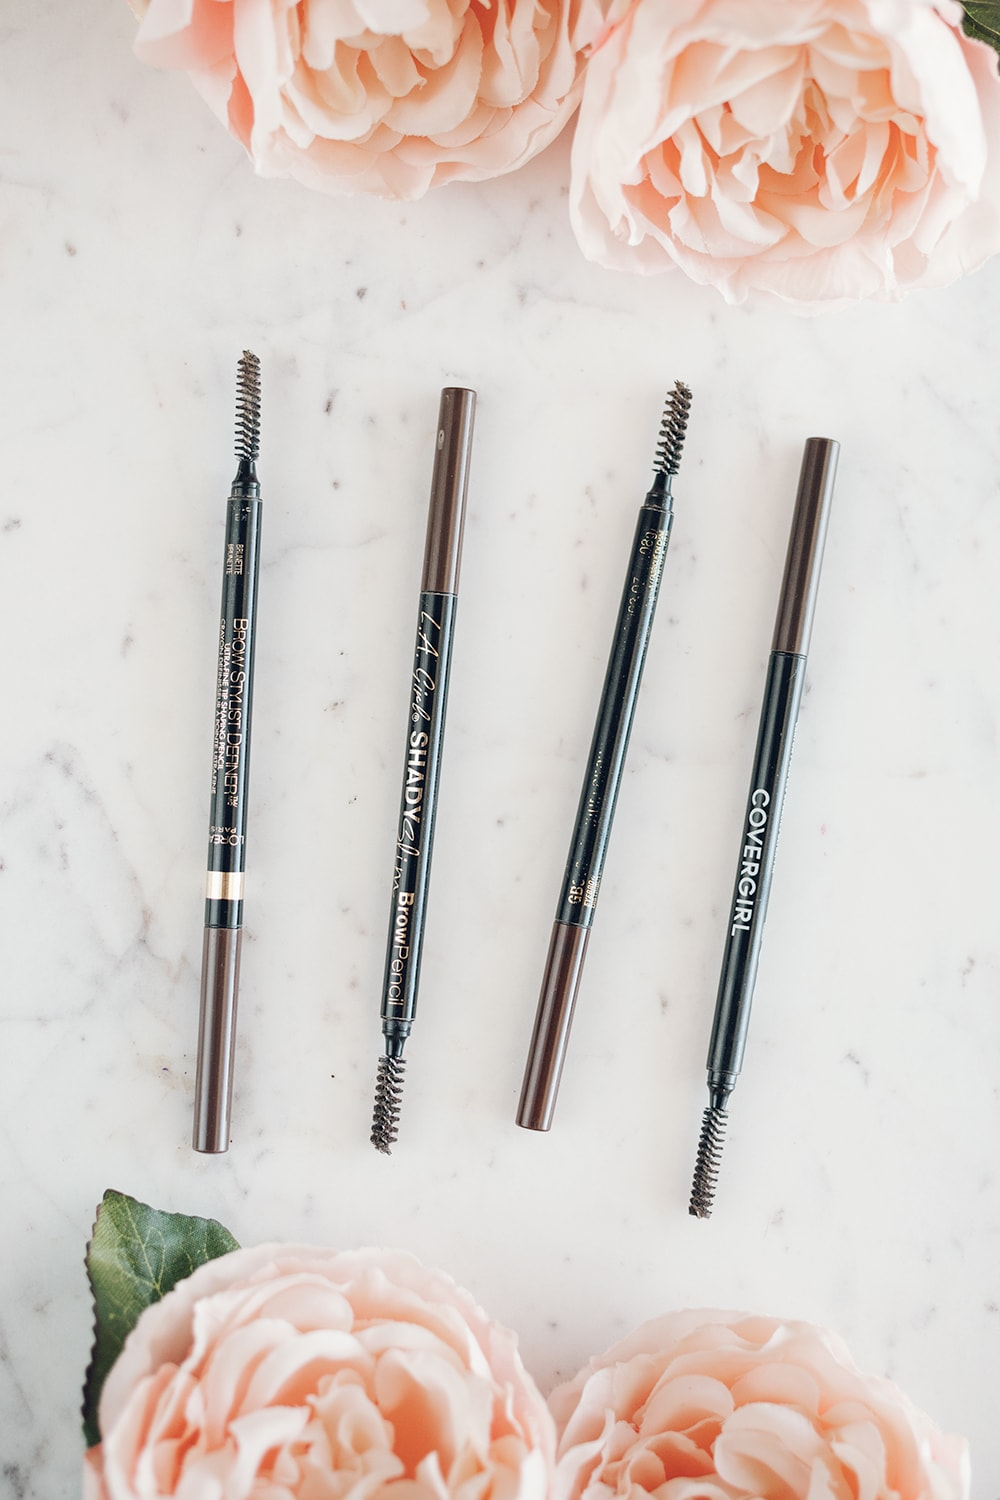 If you're looking for the best drugstore eyebrow pencil, Houston beauty blogger Meg O. on the Go is sharing 5 fabulous options